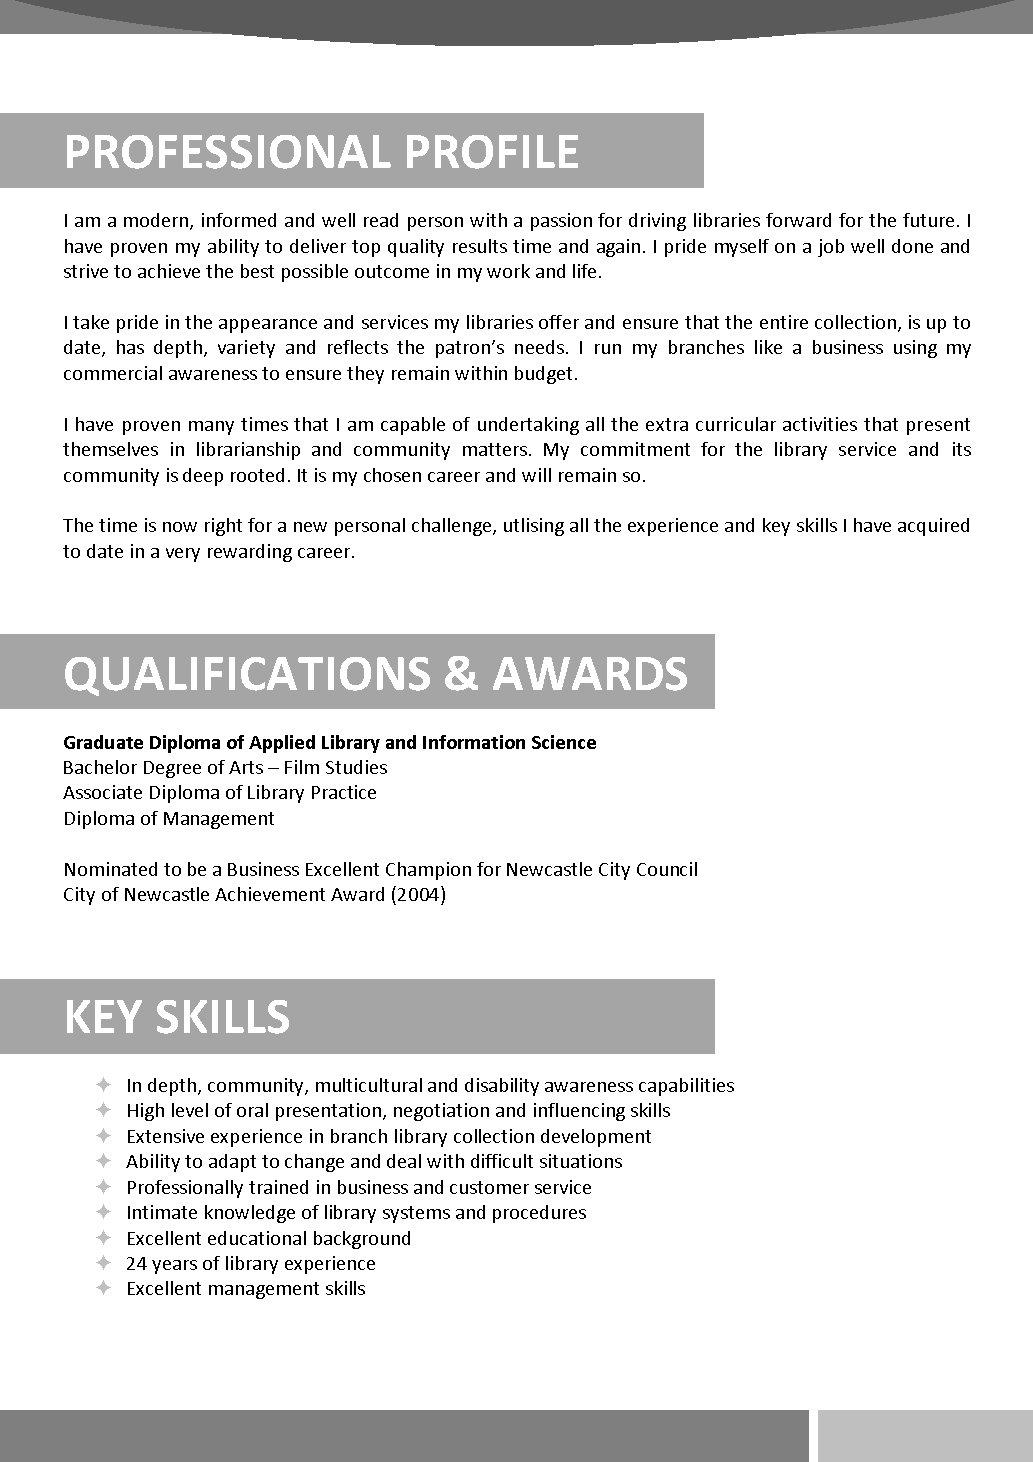 online writing lab resume writing brisbane qld critical